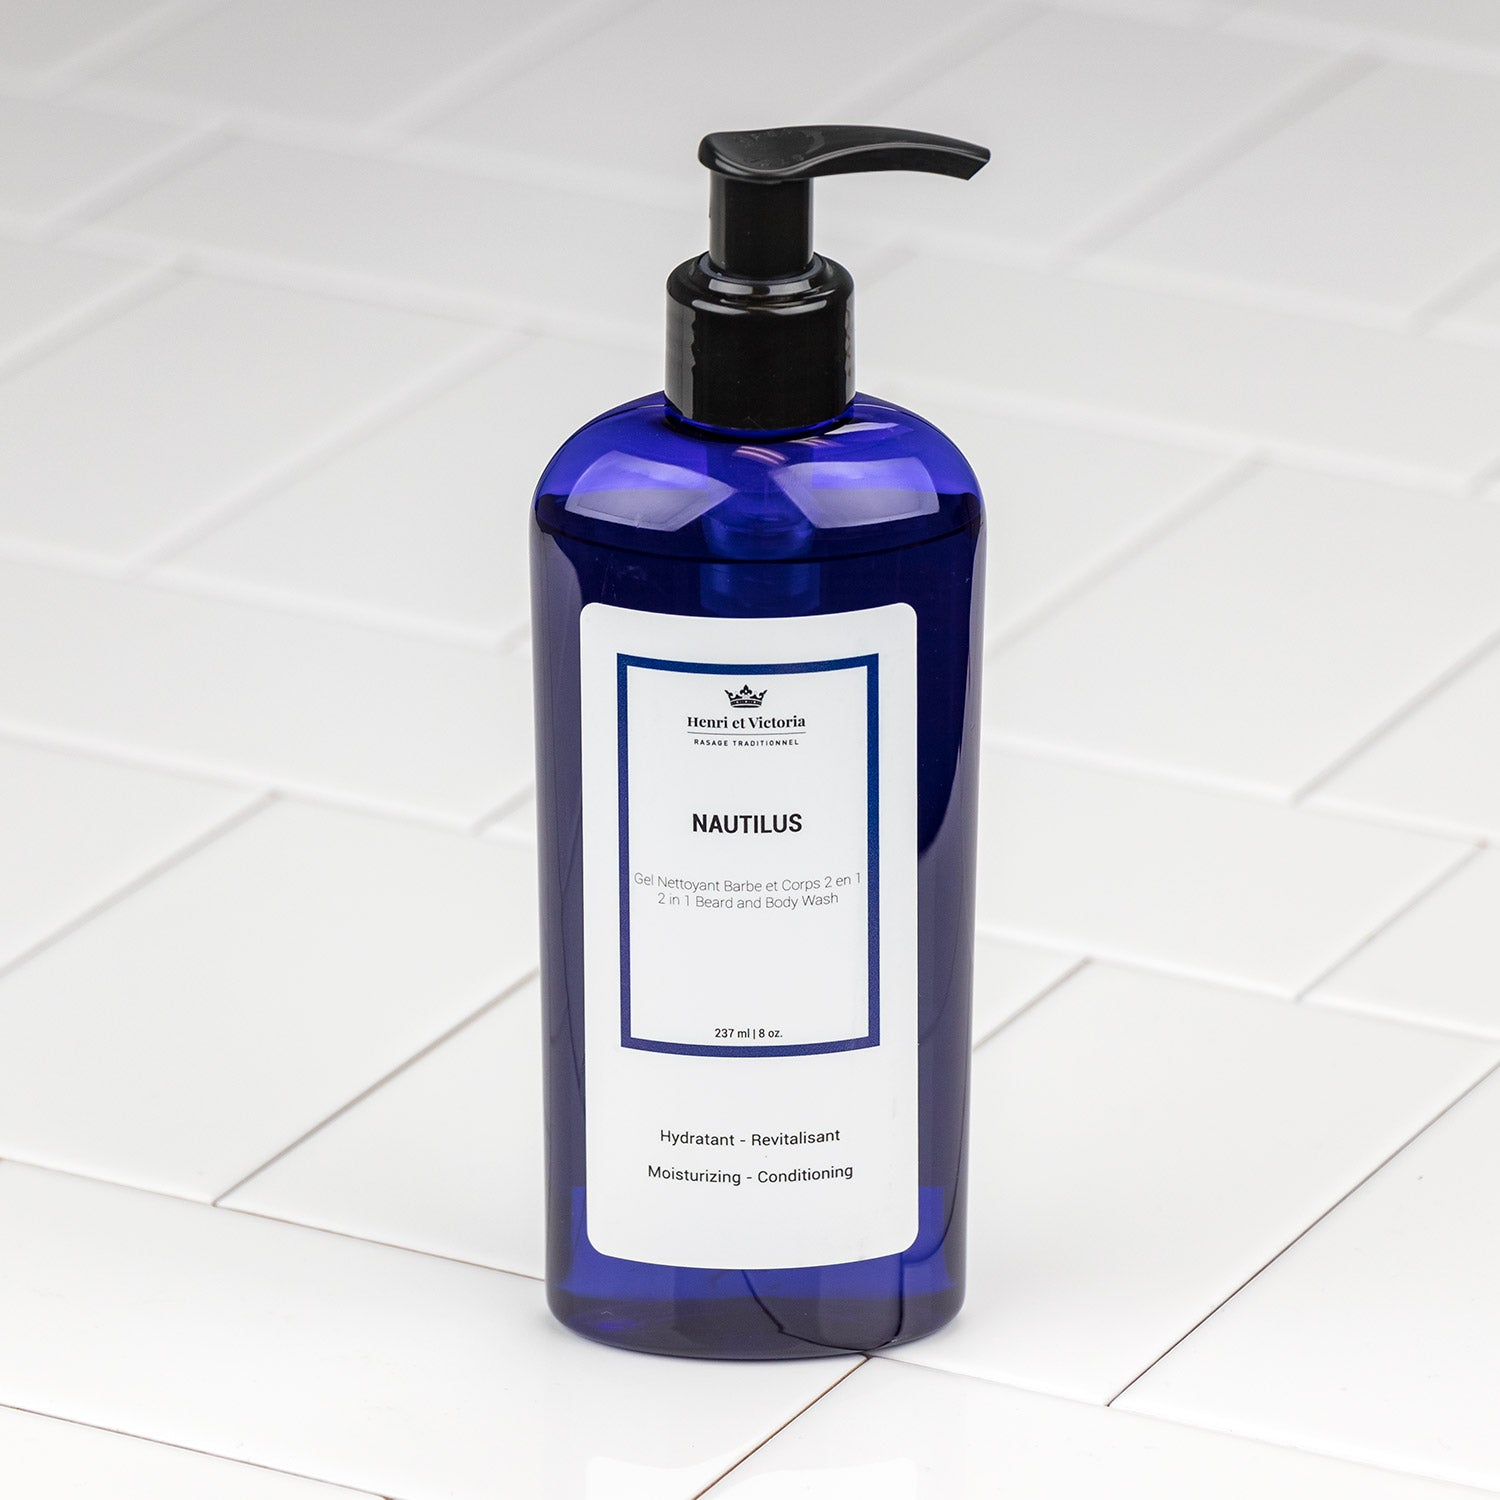 Henri et Victoria - Nautilus Body and Beard Wash 8oz